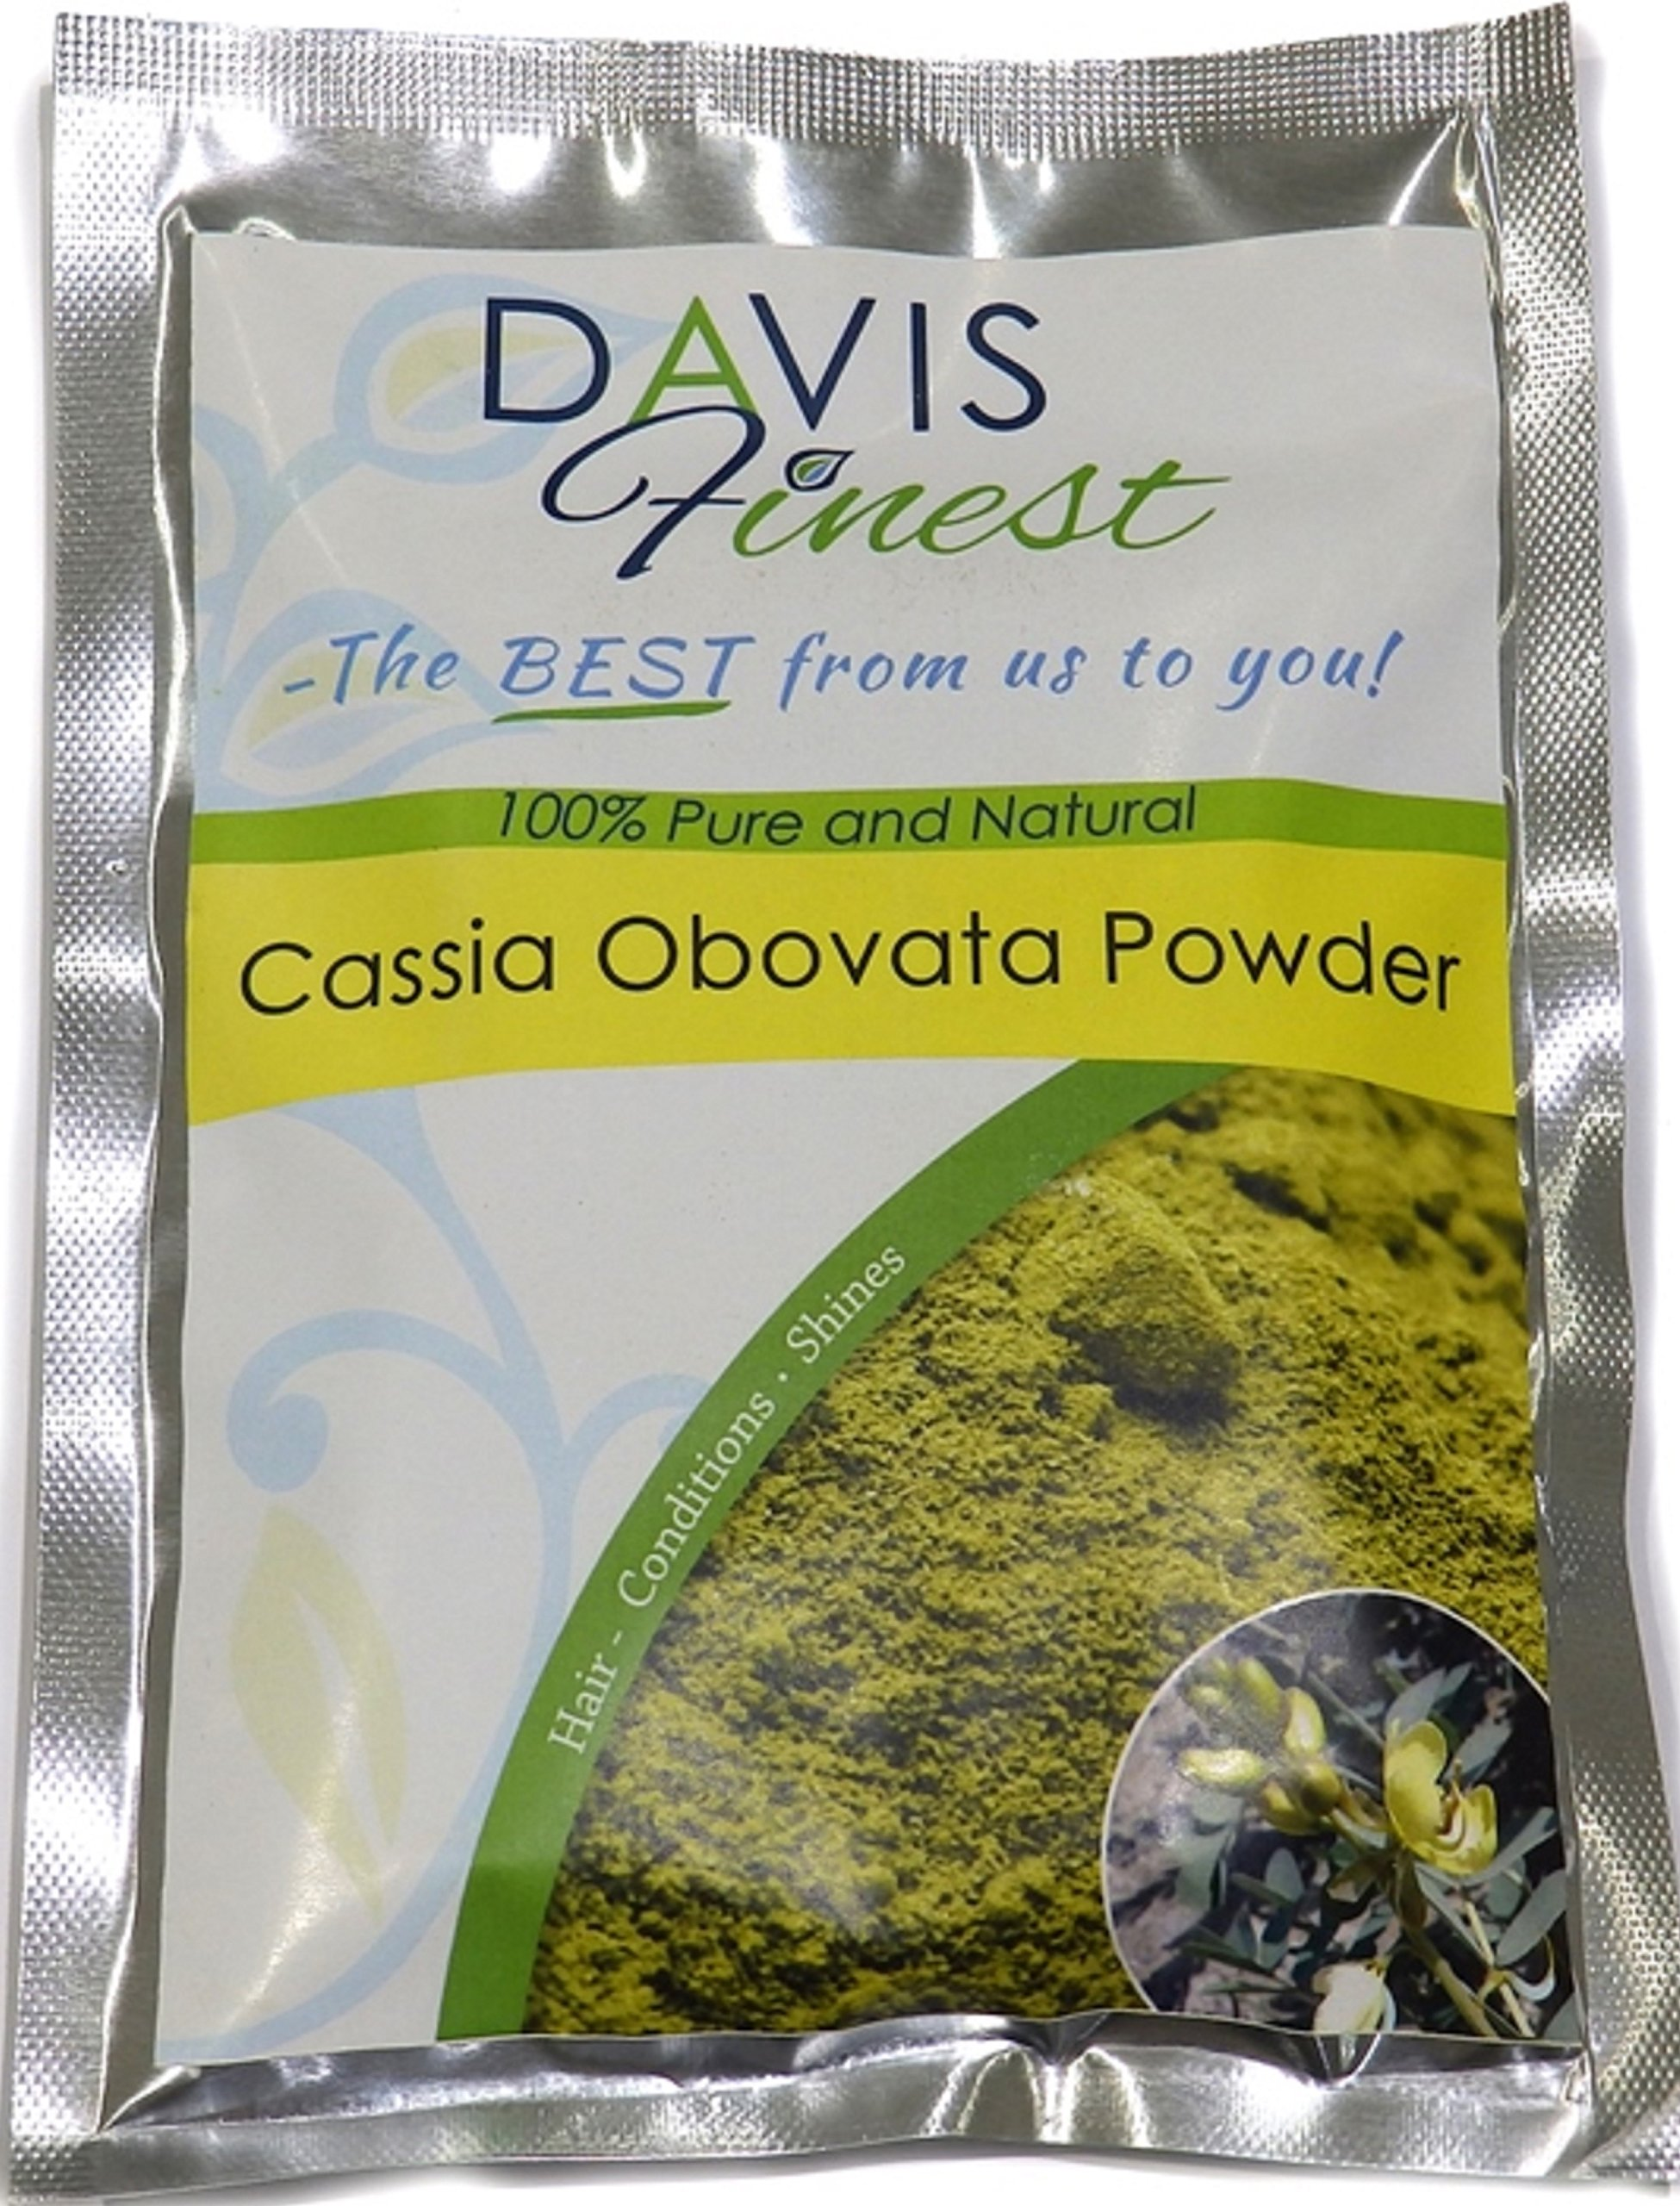 Cassia Obovata Powder For Hair - Natural Strengthening Thickening Volumizing Shine Conditioner - Neutral Henna Blonde Color Hair Dye Enhancer (100g) by Davis Finest